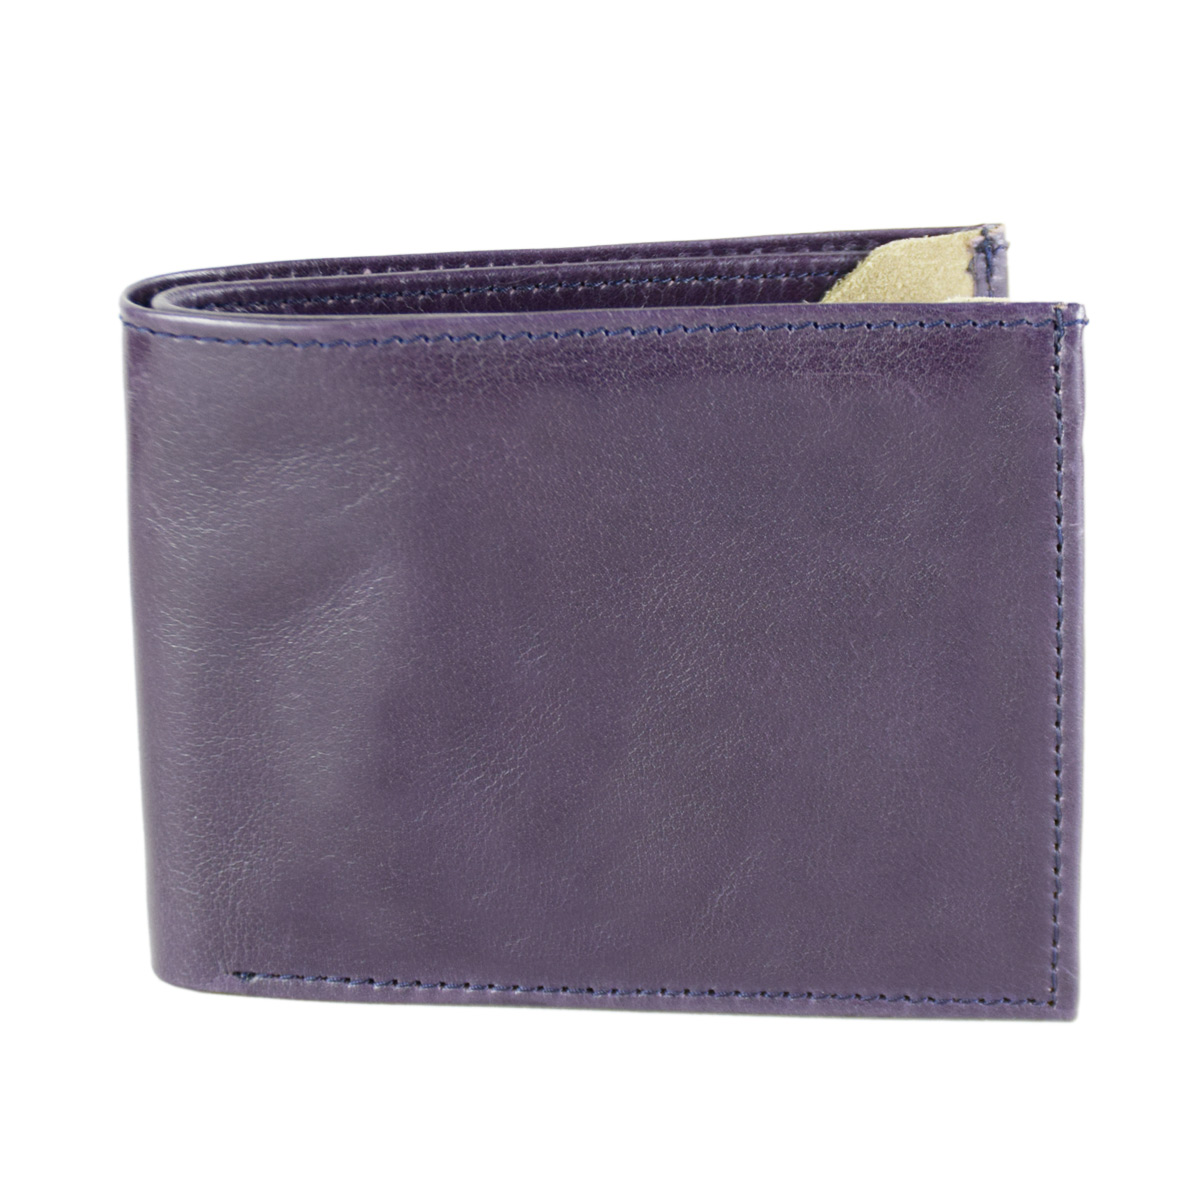 PURPAL WALLET WITH SEVERAL POCKETS